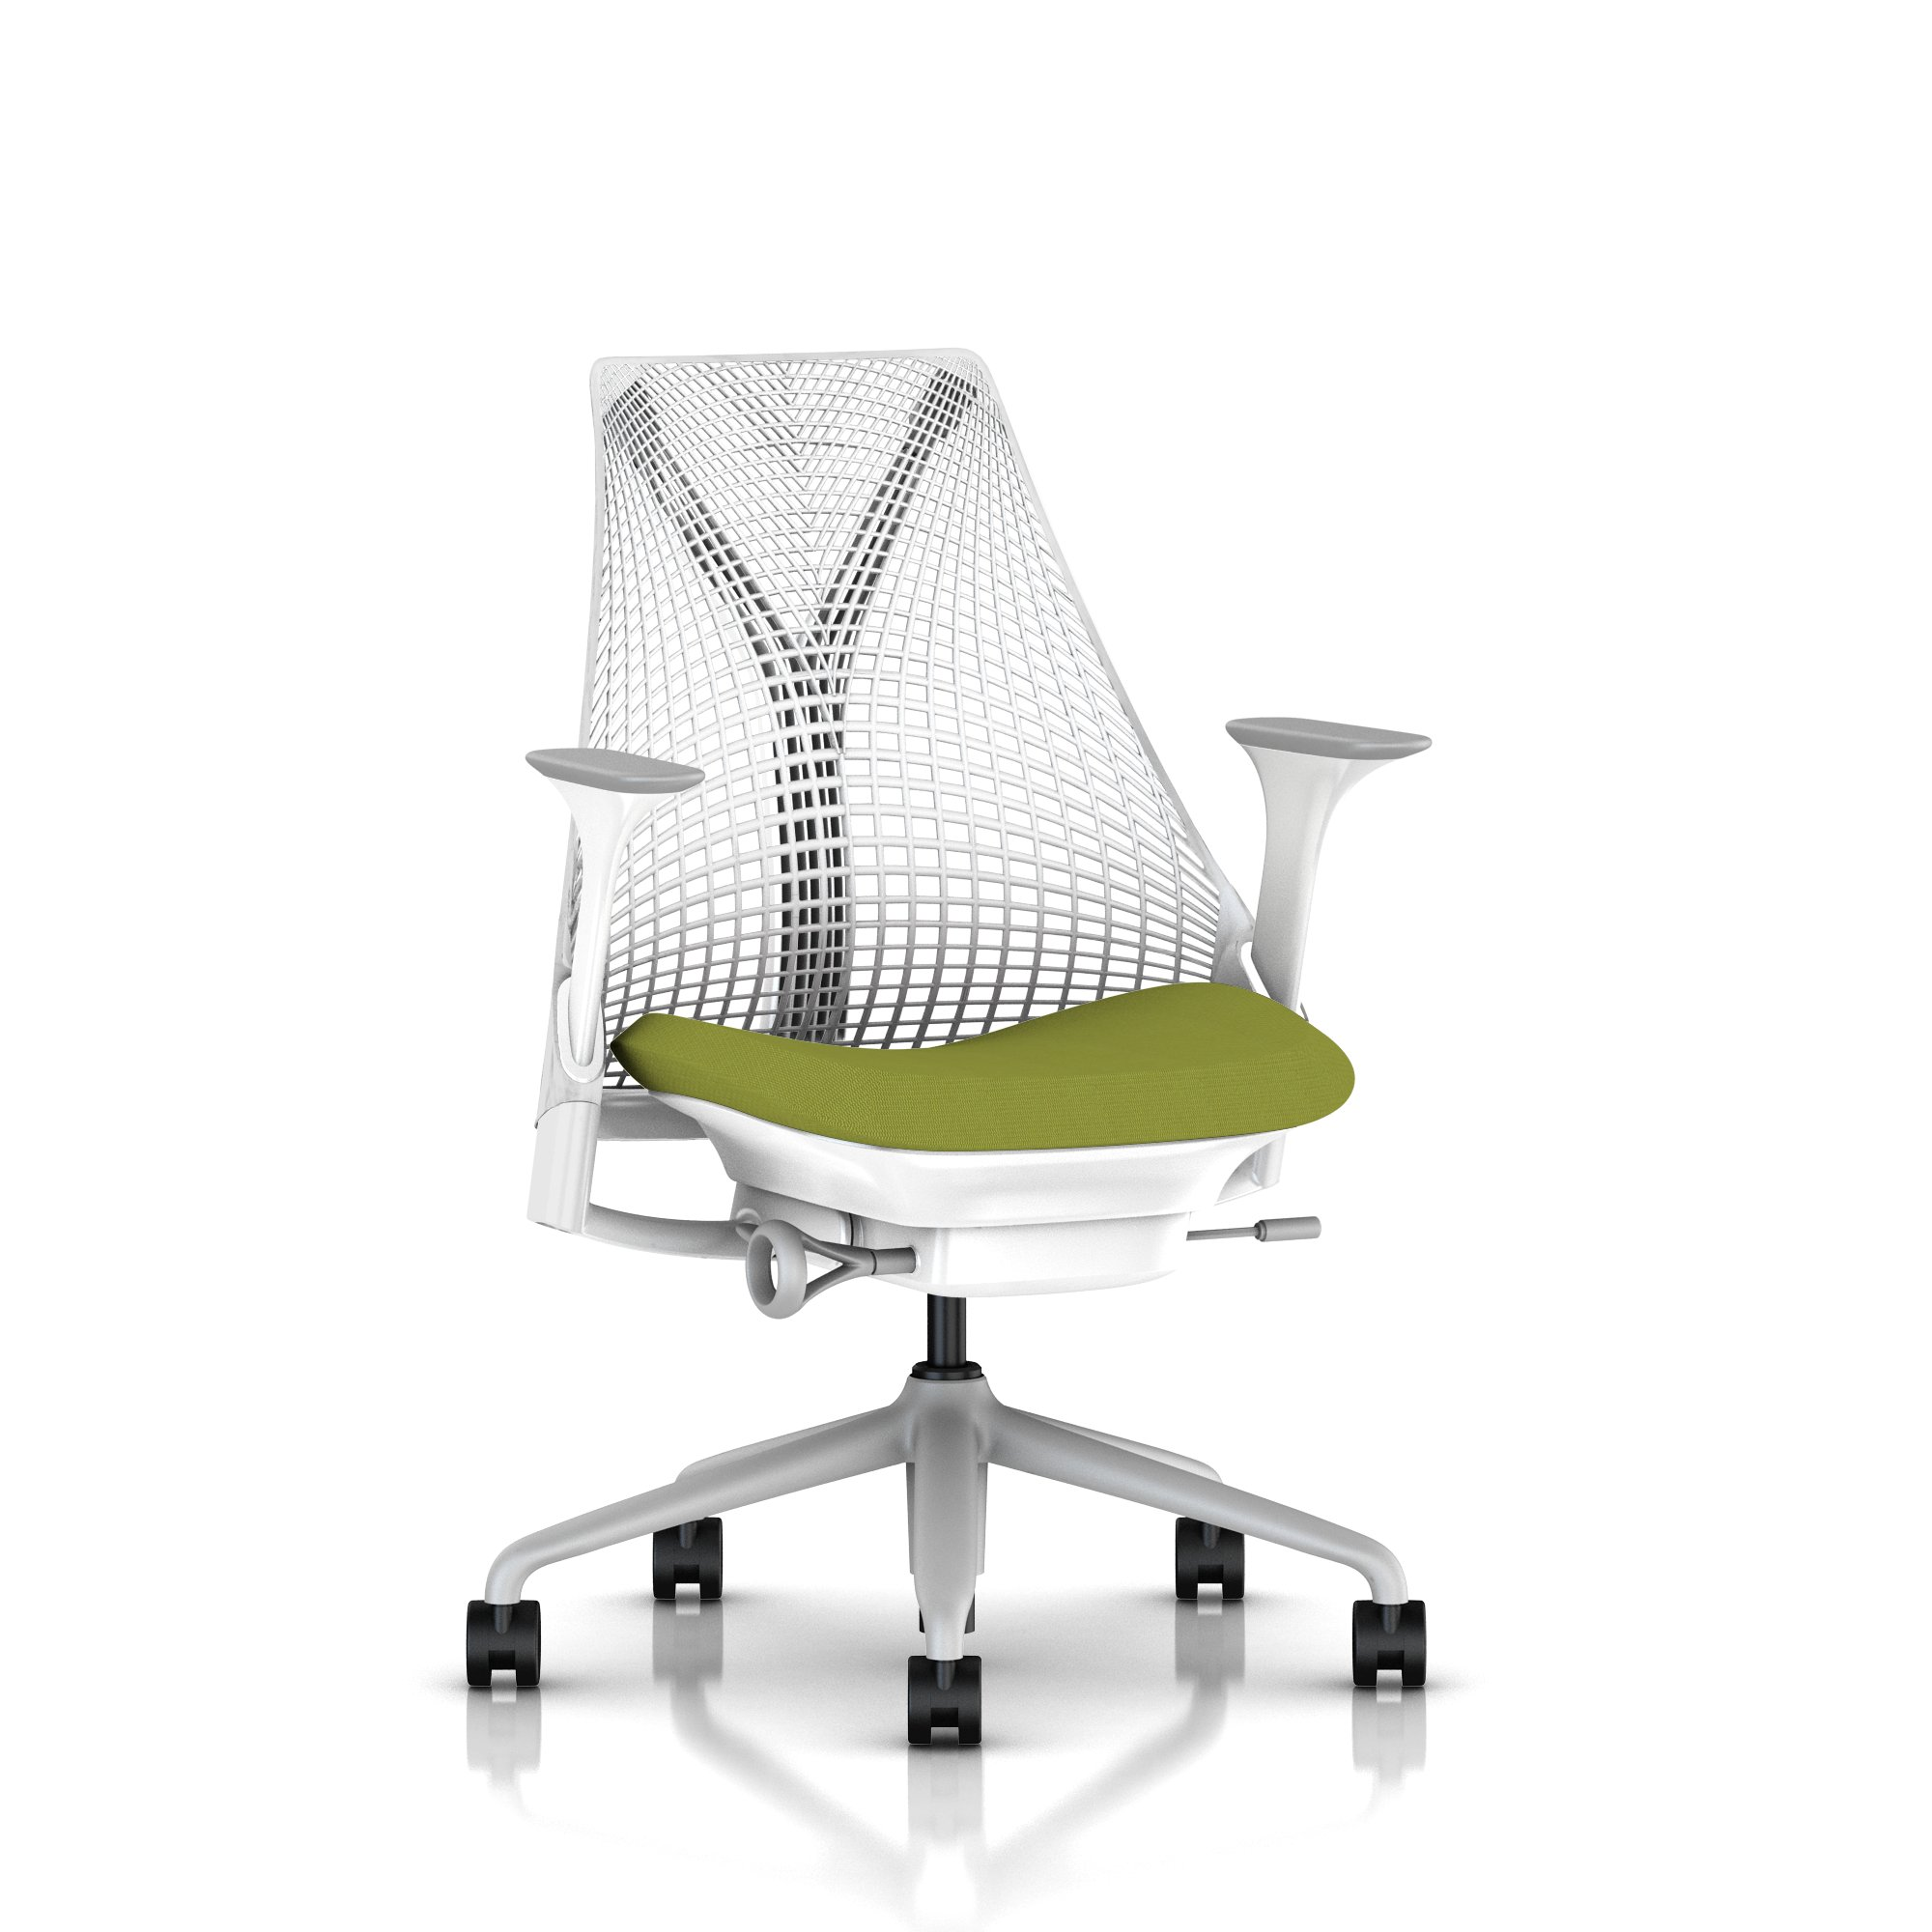 Avocado Sayl-Fog base / White frame and Y tower Studio White Back Cosmo Avocado Fabric Seat Fog Armpad Tilt Limiter with Seat Angle Adjustment Height Adjustable Arms Adjustable Seat Depth Non-Adjustable Back Support 2.5-inch Standard Carpet Casters